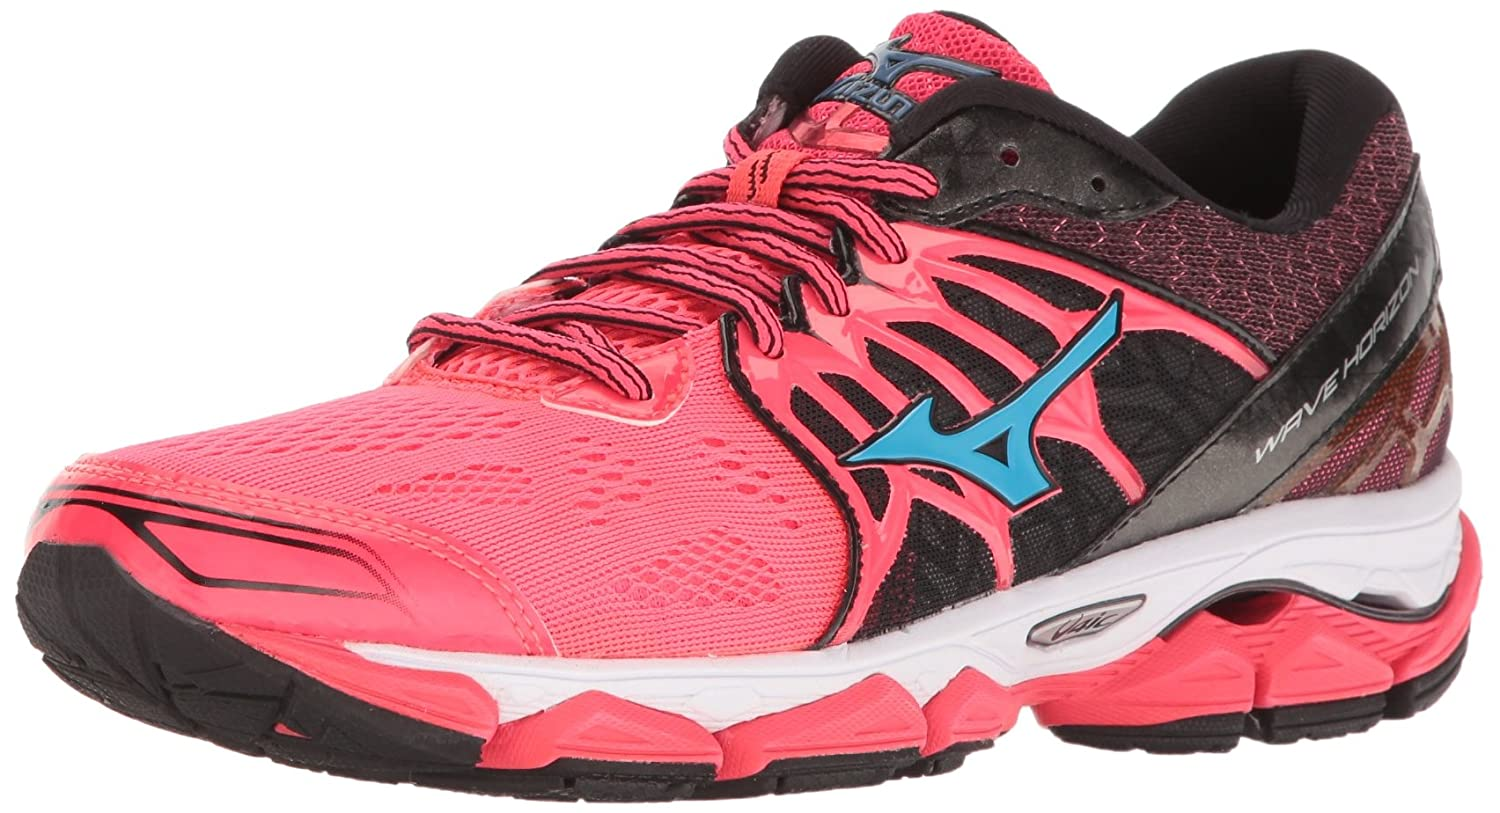 Mizuno Women's Wave Horizon Running Shoe B01H3EEG6E 10 B(M) US|Pink/Black